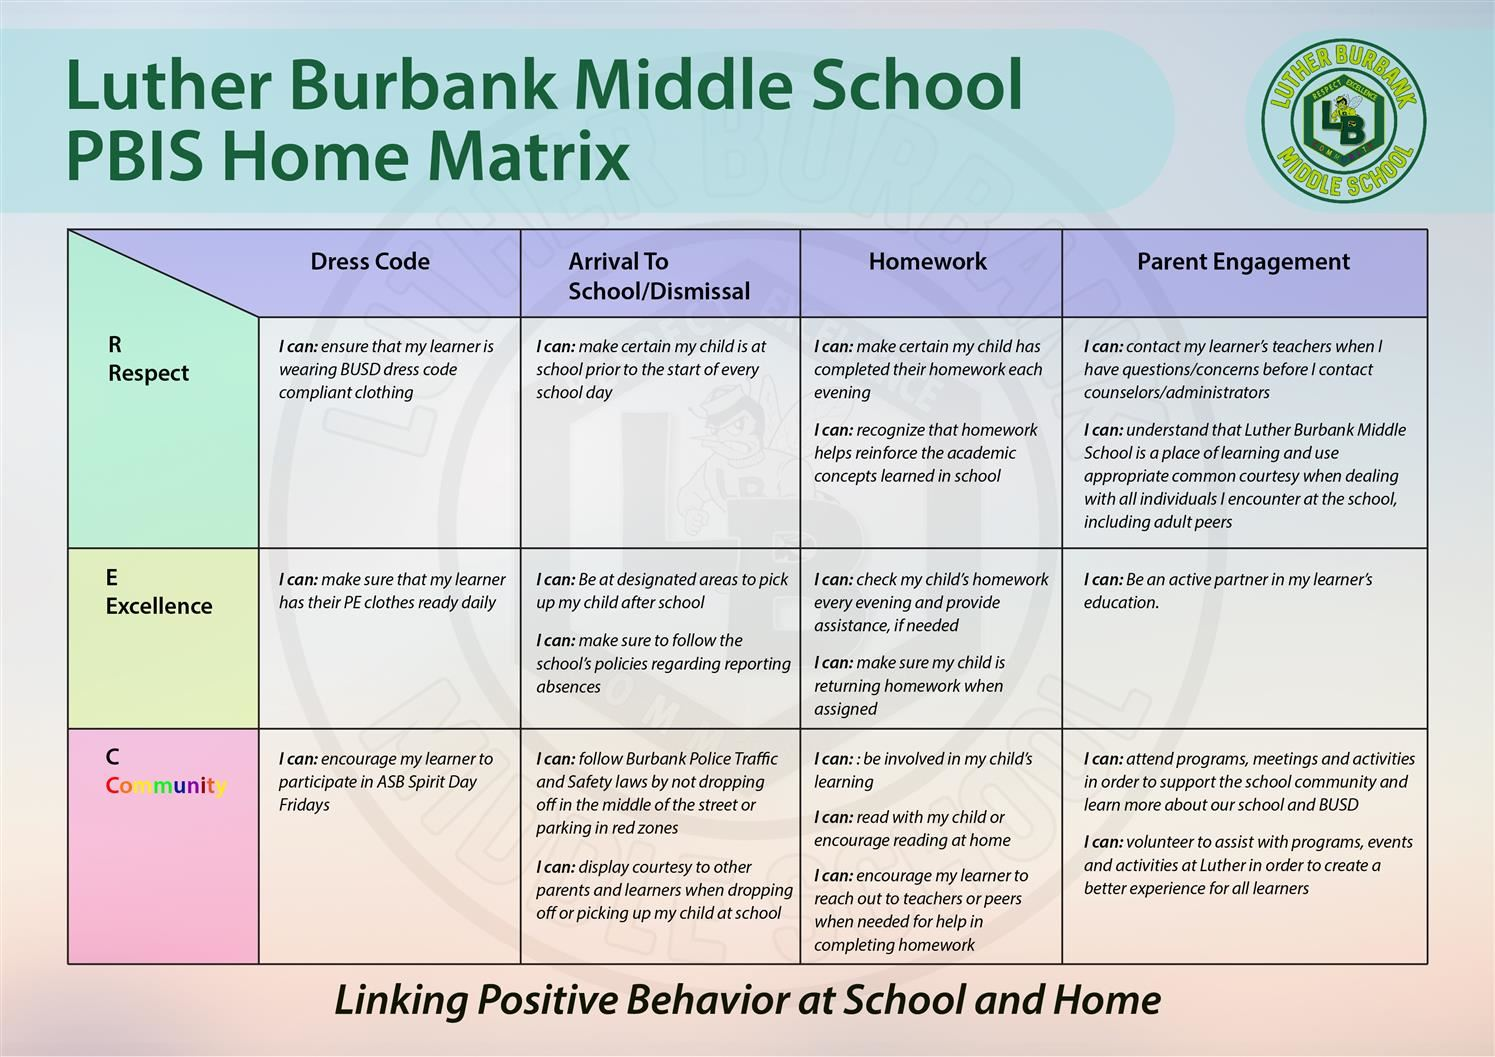 PBIS Home Matrix - Linking Positive Behavior at School and Home